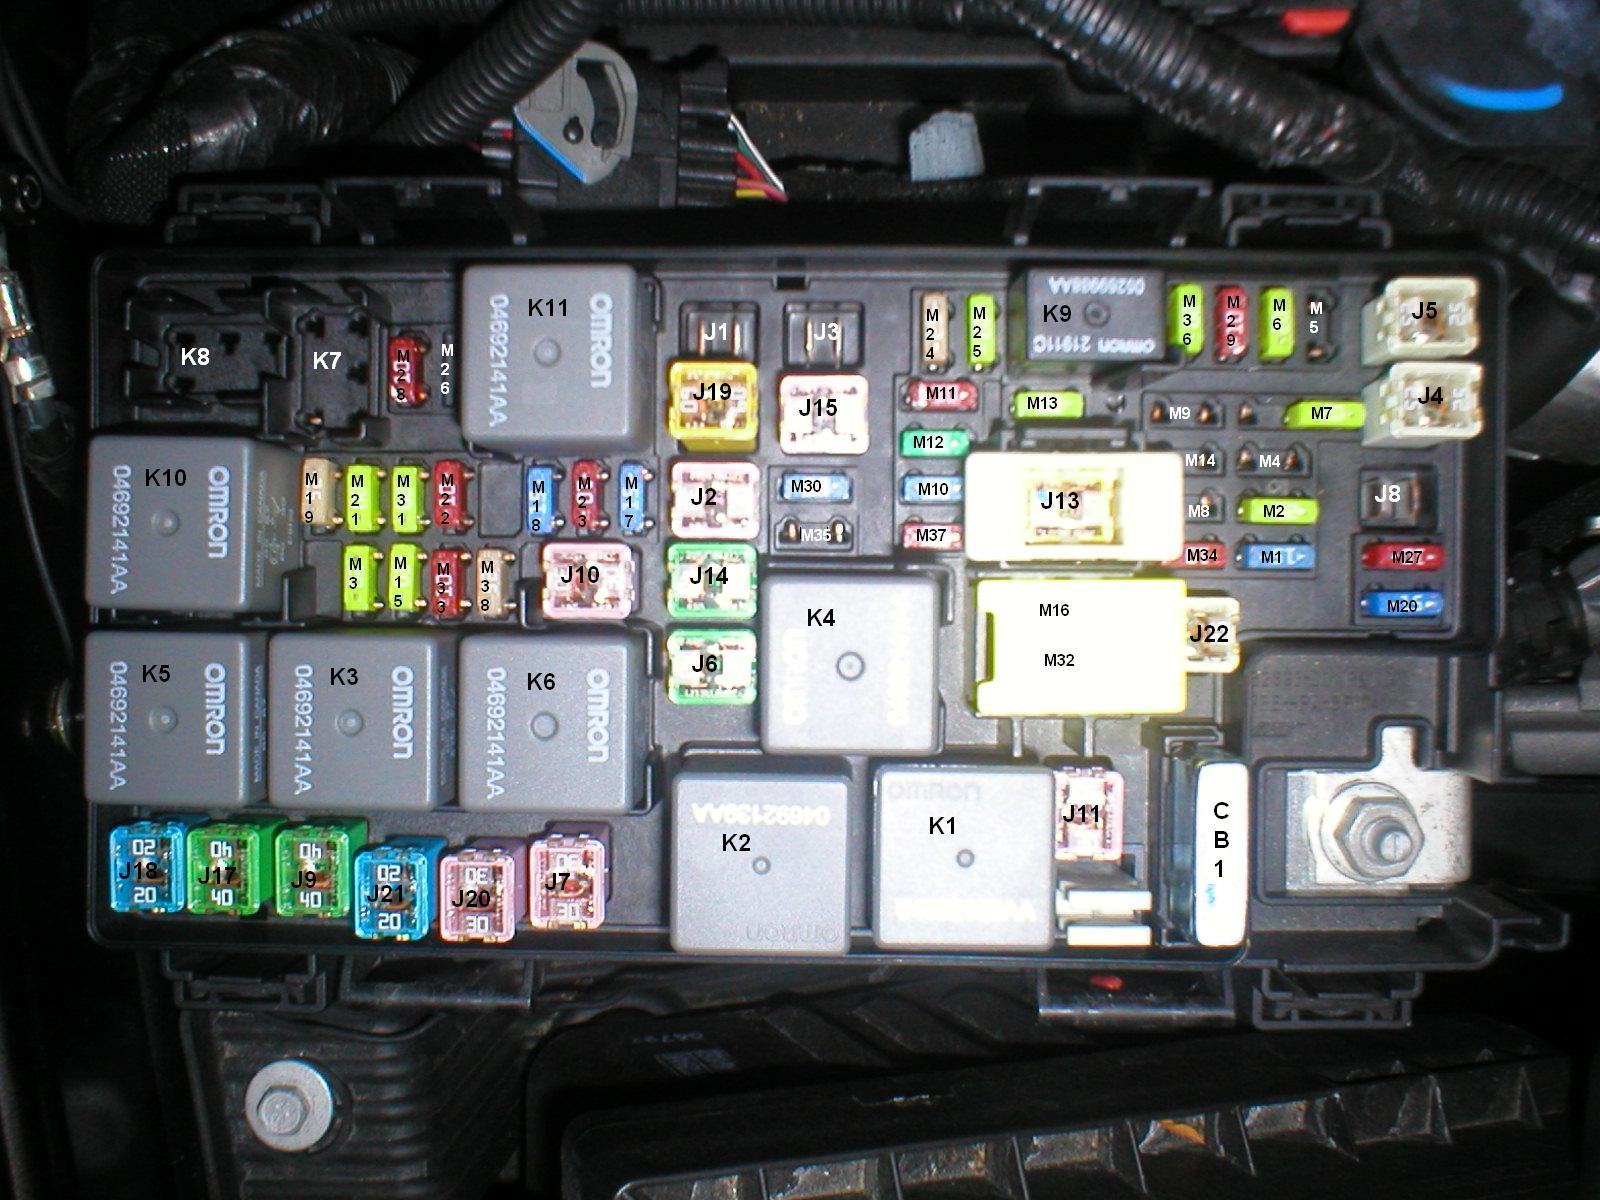 hight resolution of 2008 jeep fuse box wiring diagram08 wrangler fuse box wiring diagram name2007 jeep wrangler fuse box